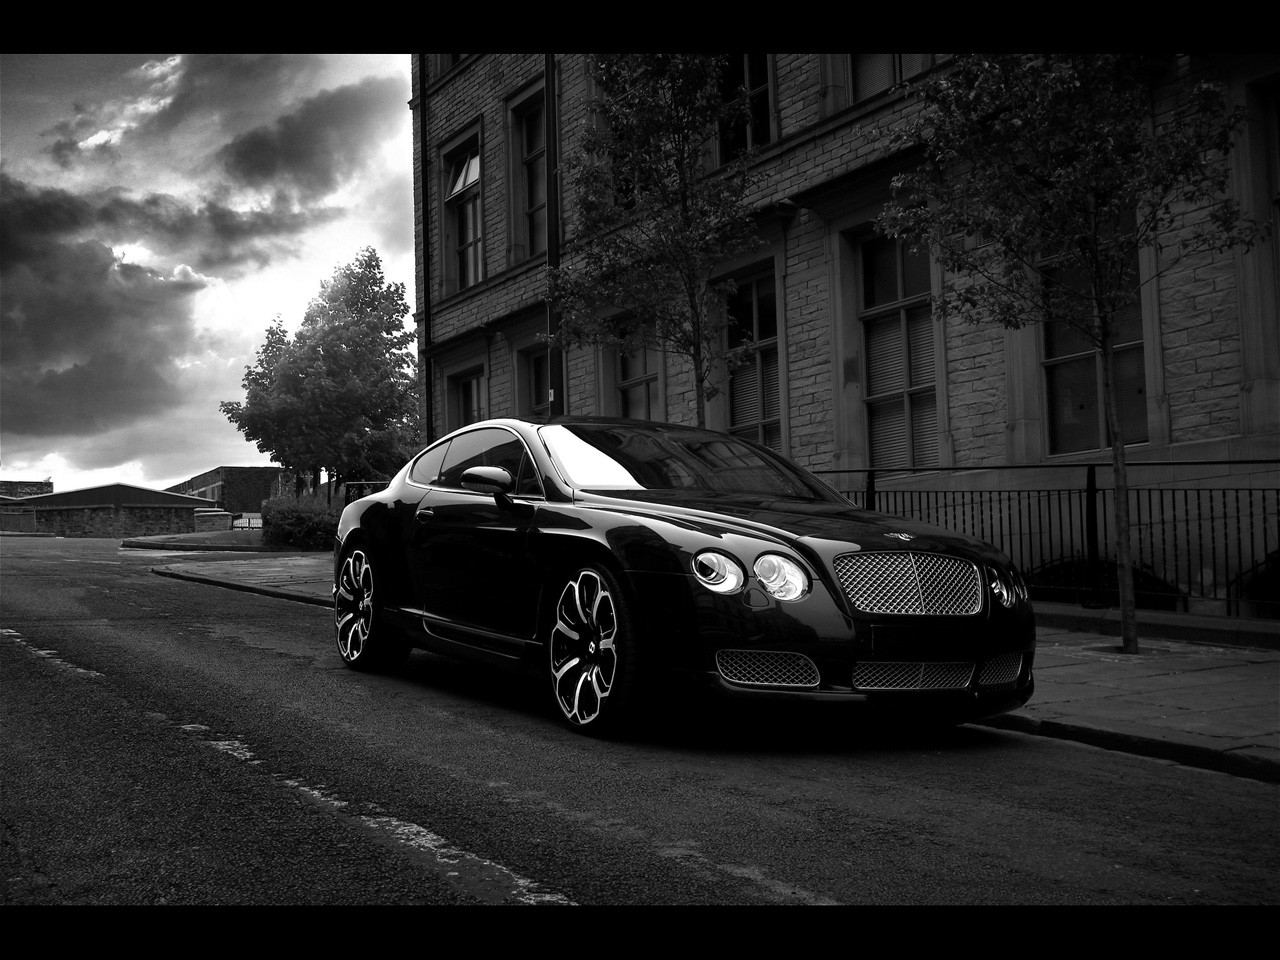 Black and white cars 42 background wallpaper - Car wallpaper black and white ...